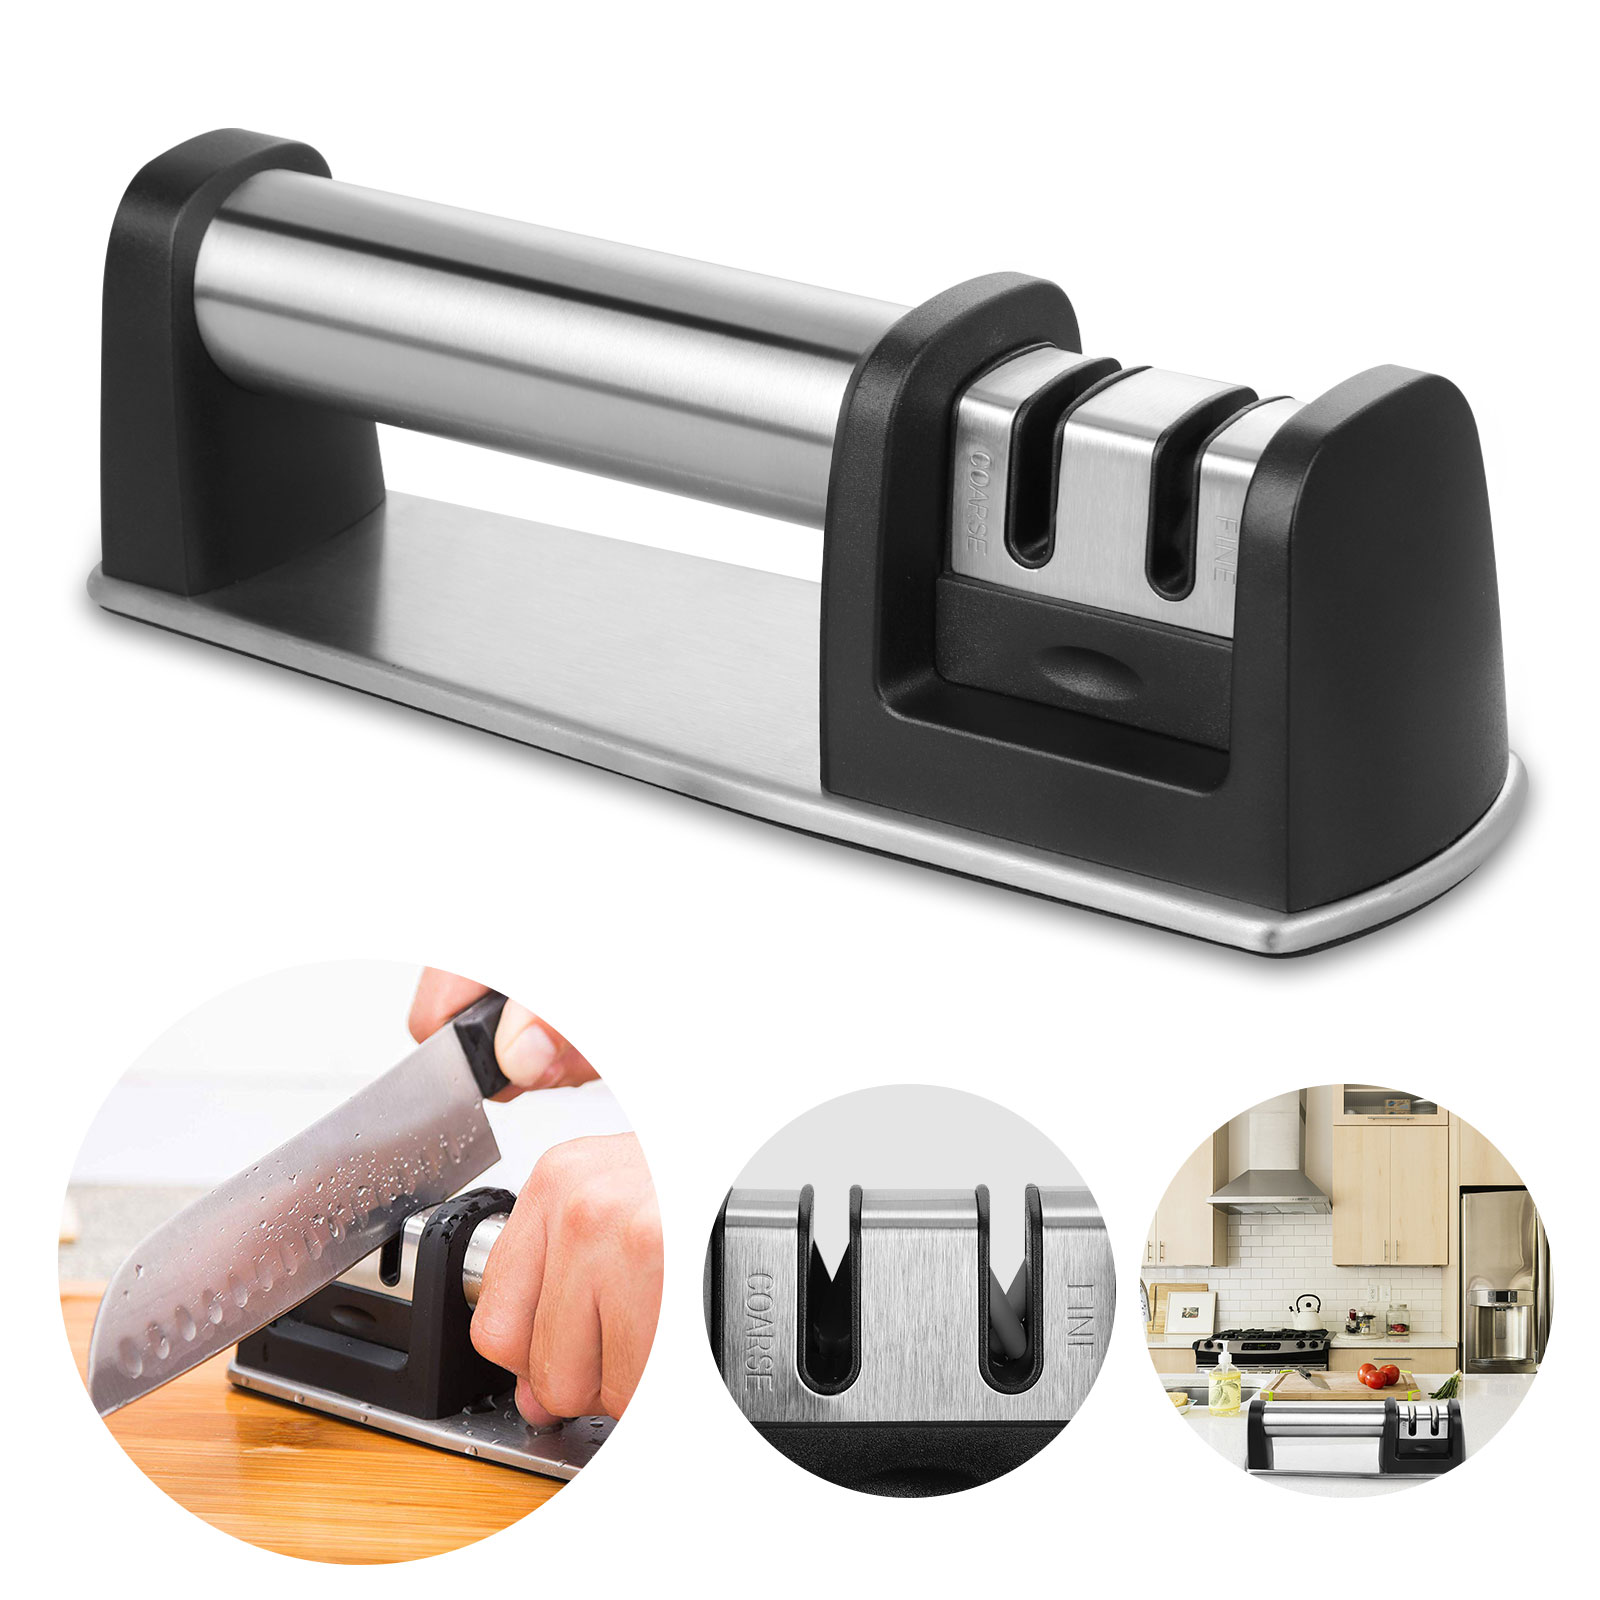 Kitchen Knife Sharpener - Knife Sharpening Tool, 2-Stage Knife Sharpening Tool Helps Repair, Restore and Polish Blades - Safe and Easy to Use, Black